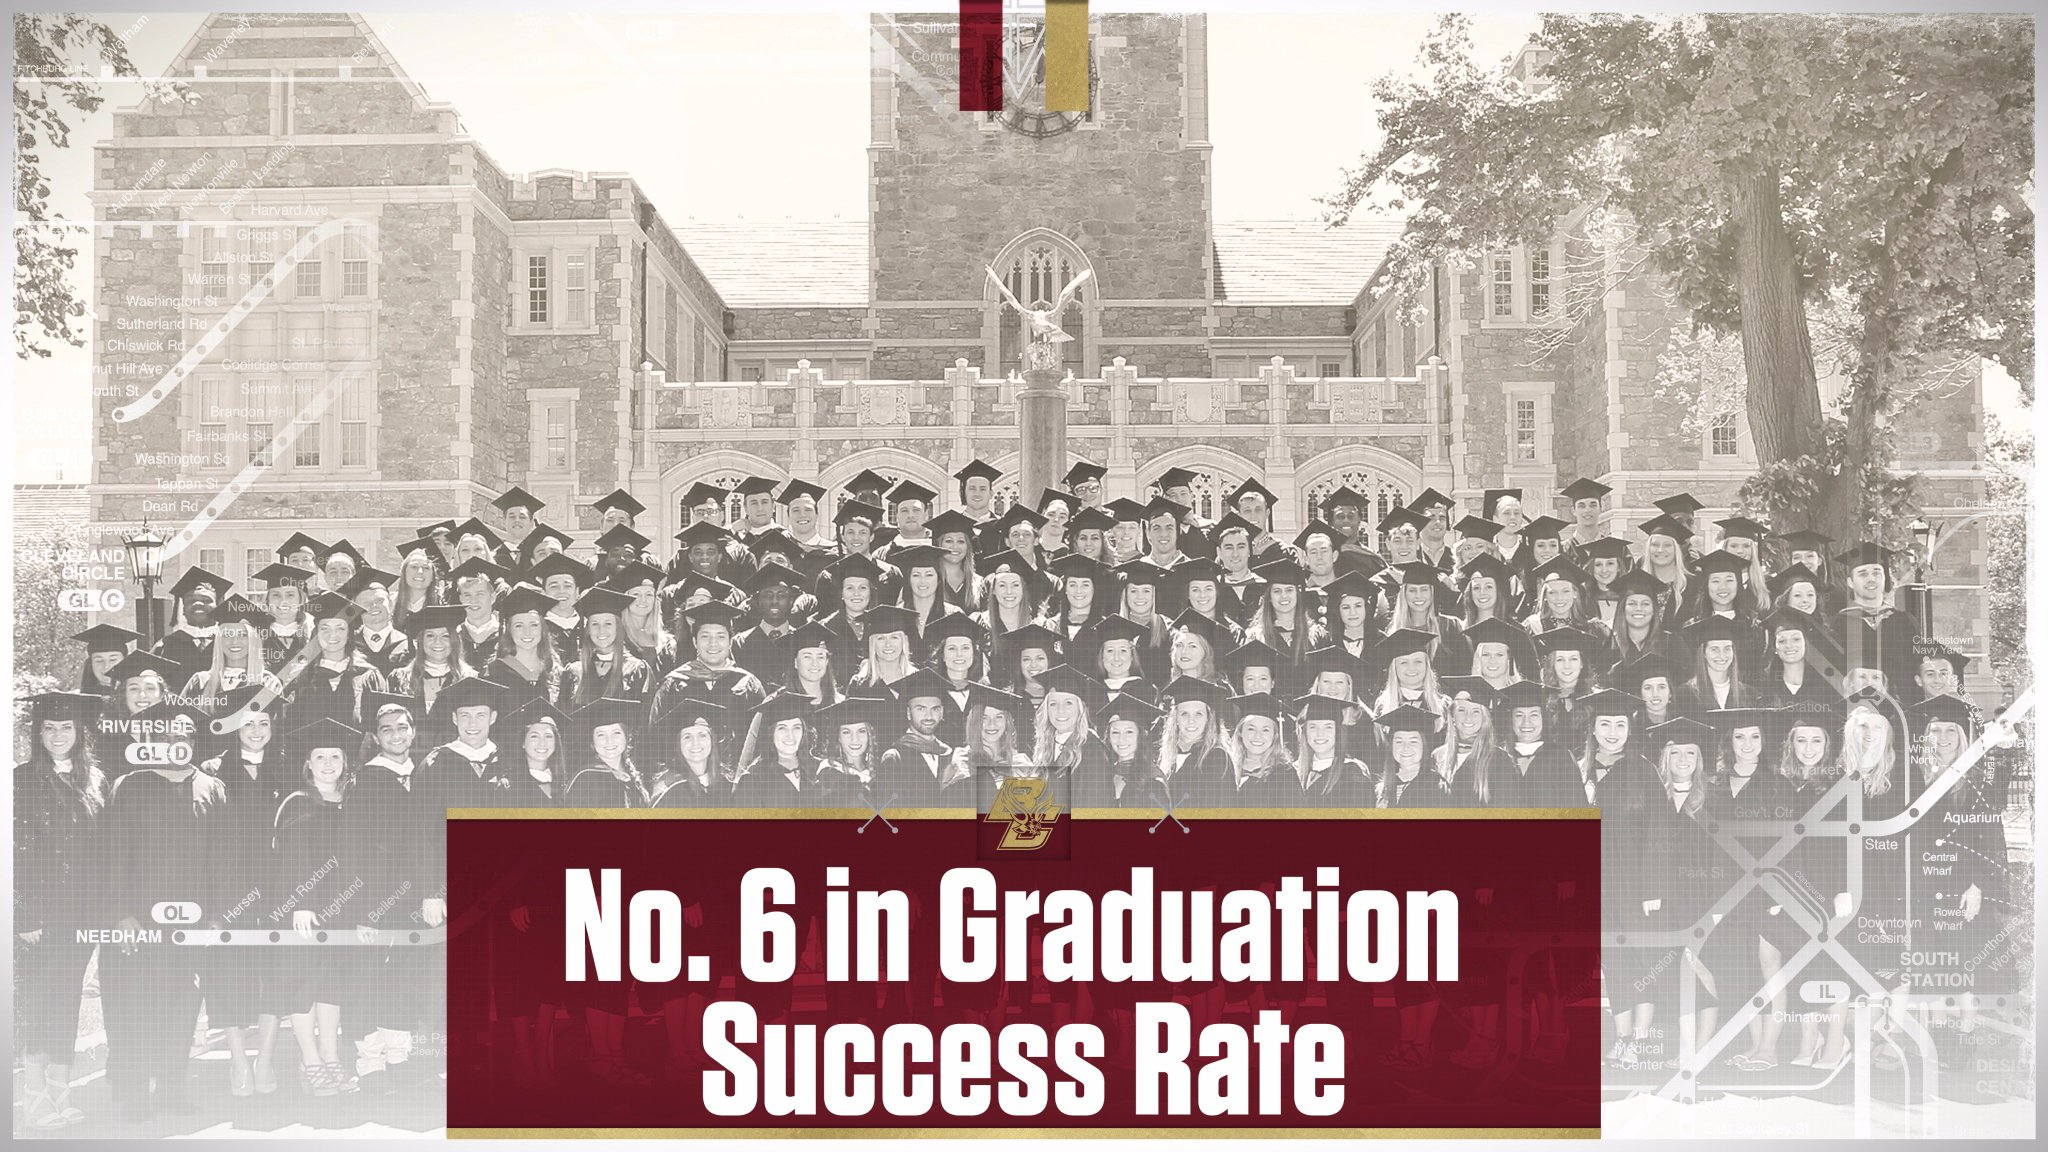 NEWS: Boston College Sixth in the Nation in Graduation Success Rate   �� https://t.co/2j6CPjRVXz  #BCEagles https://t.co/tbQGnvzuyJ